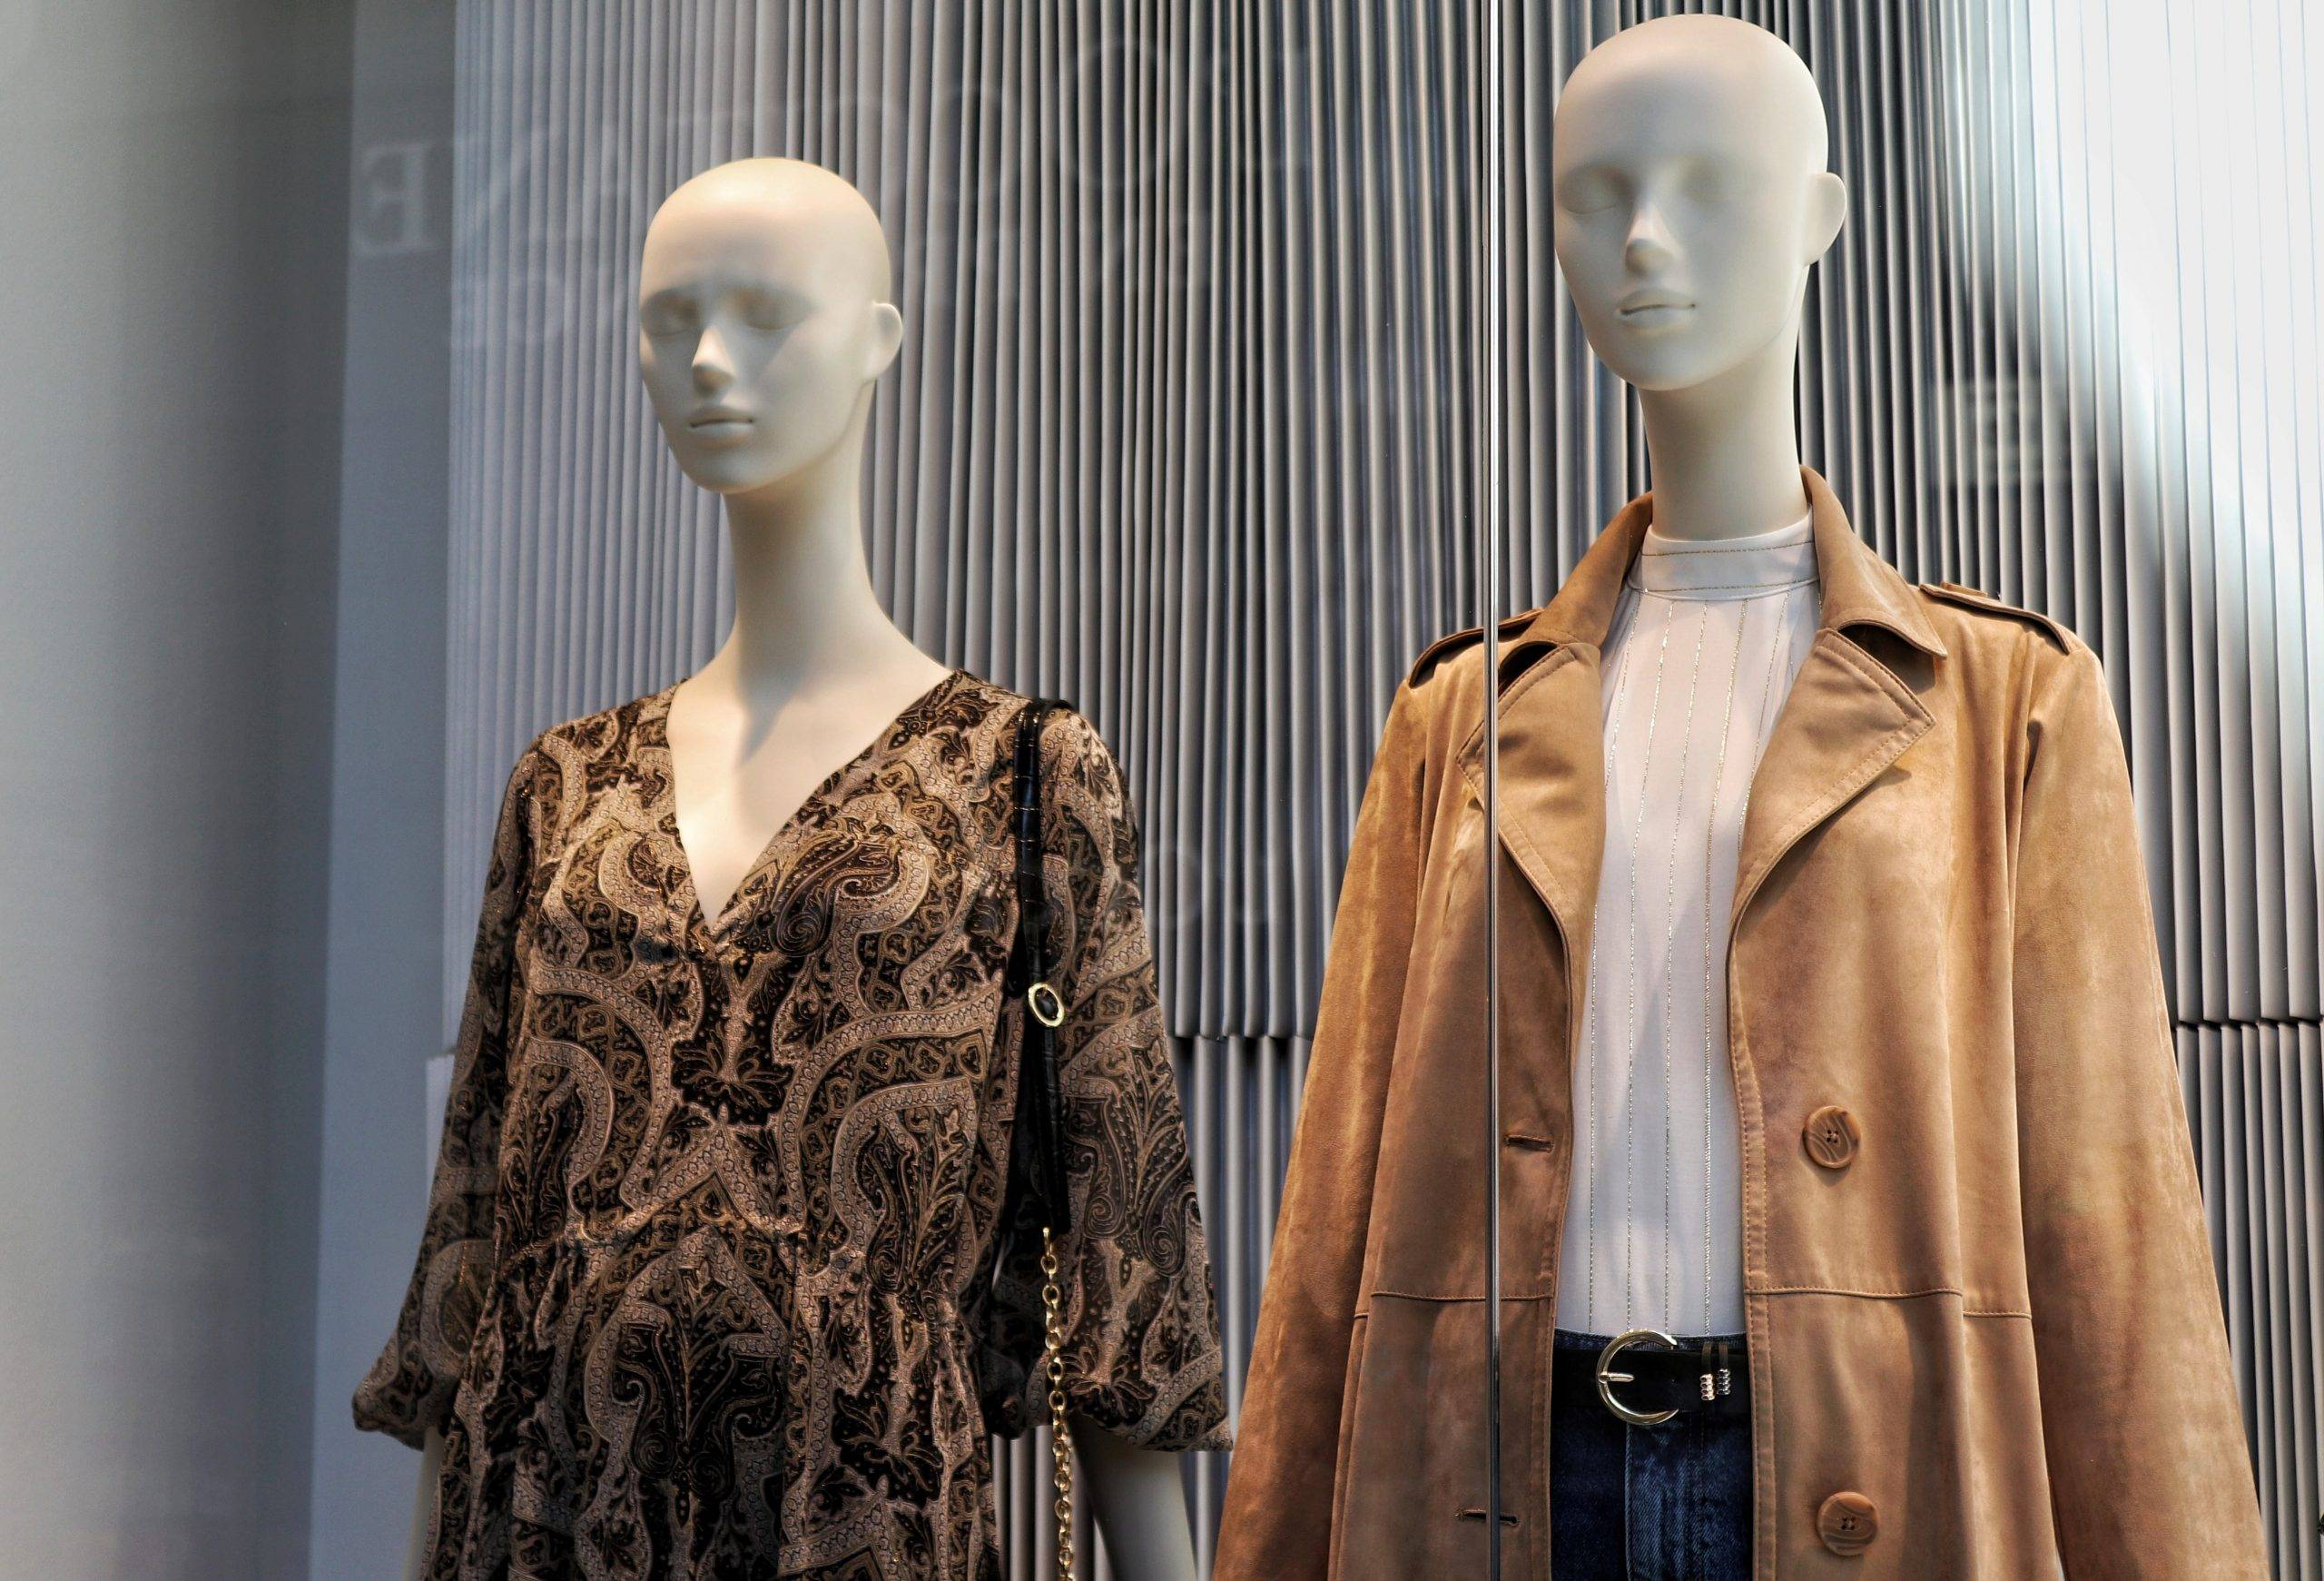 Merchandising Strategies for the New Normal